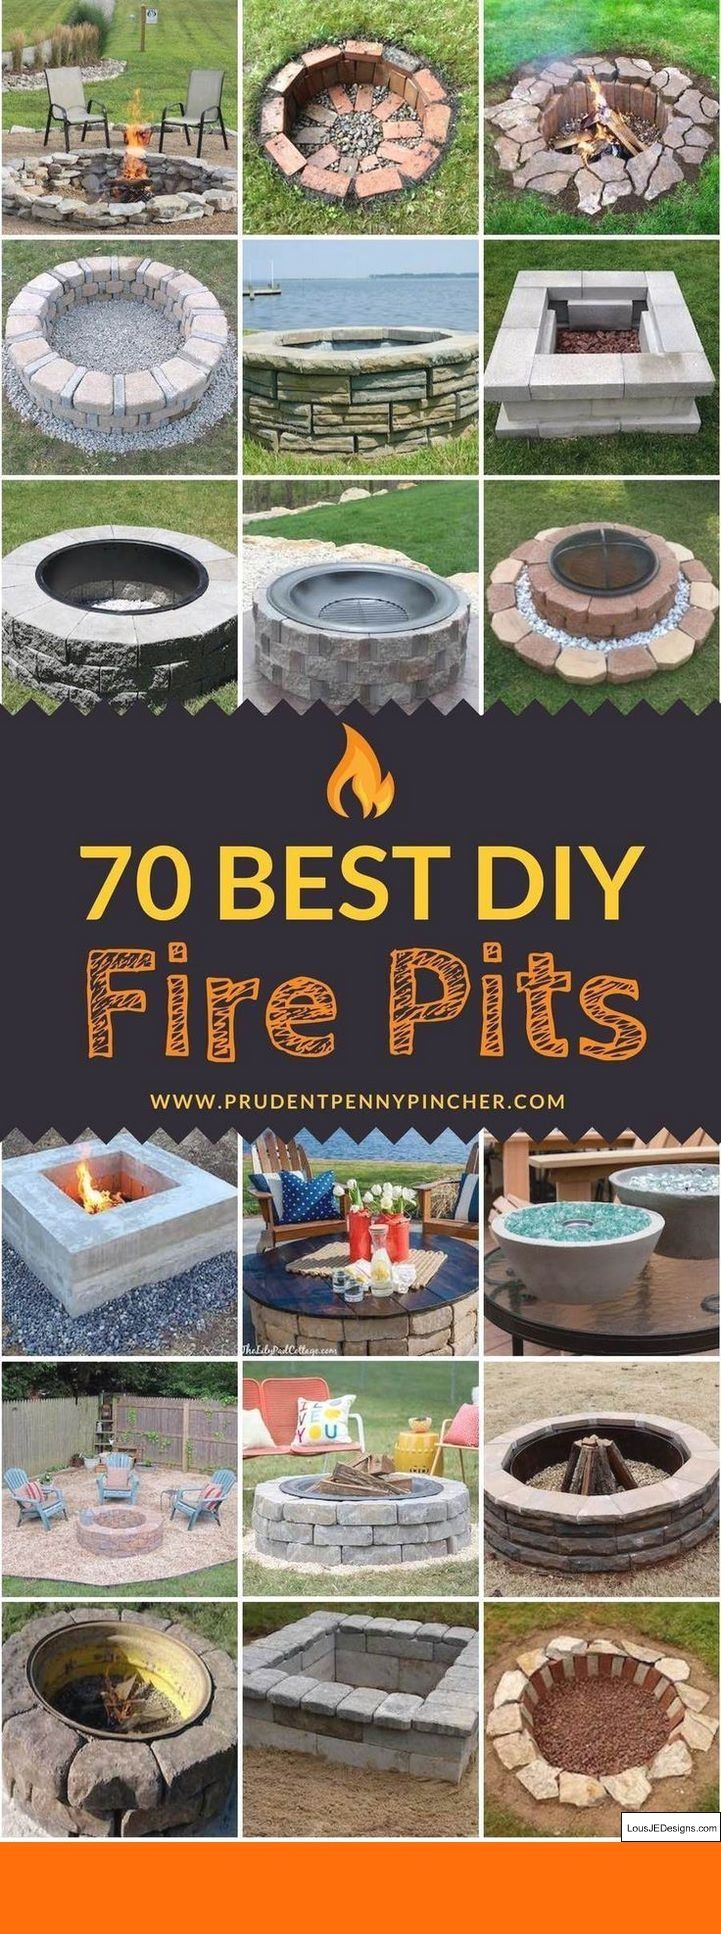 Fire Pit Grill Grate Diy Tip 63742994 Firepitideas Coolfirepits